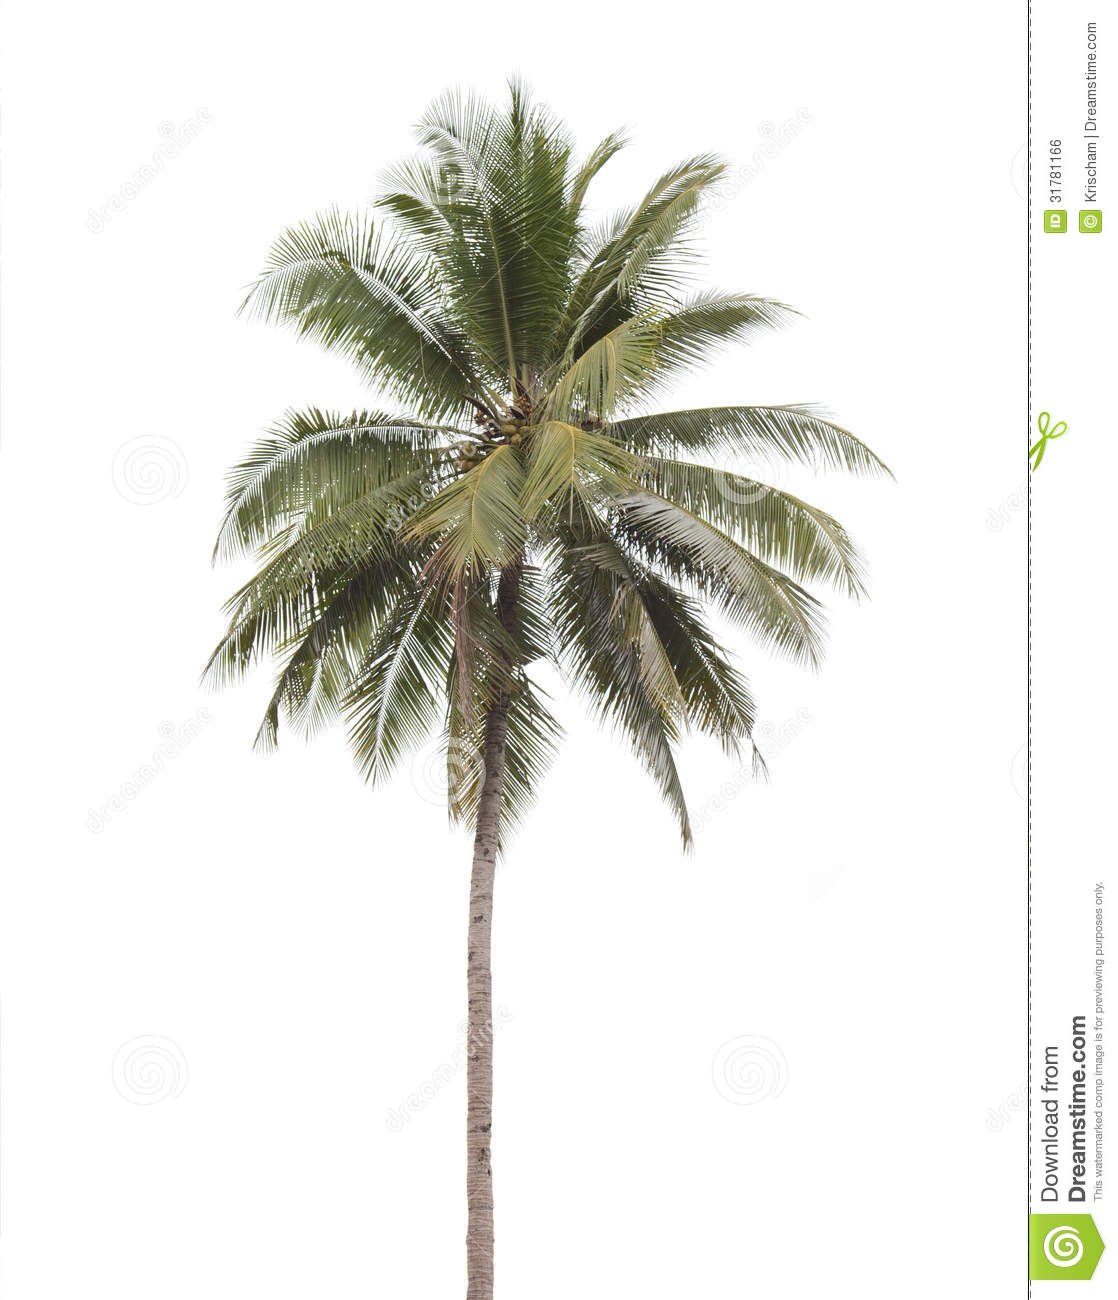 https://thumbs.dreamstime.com/z/coconut-palm-tree-isolated-white-background-31781166.jpg